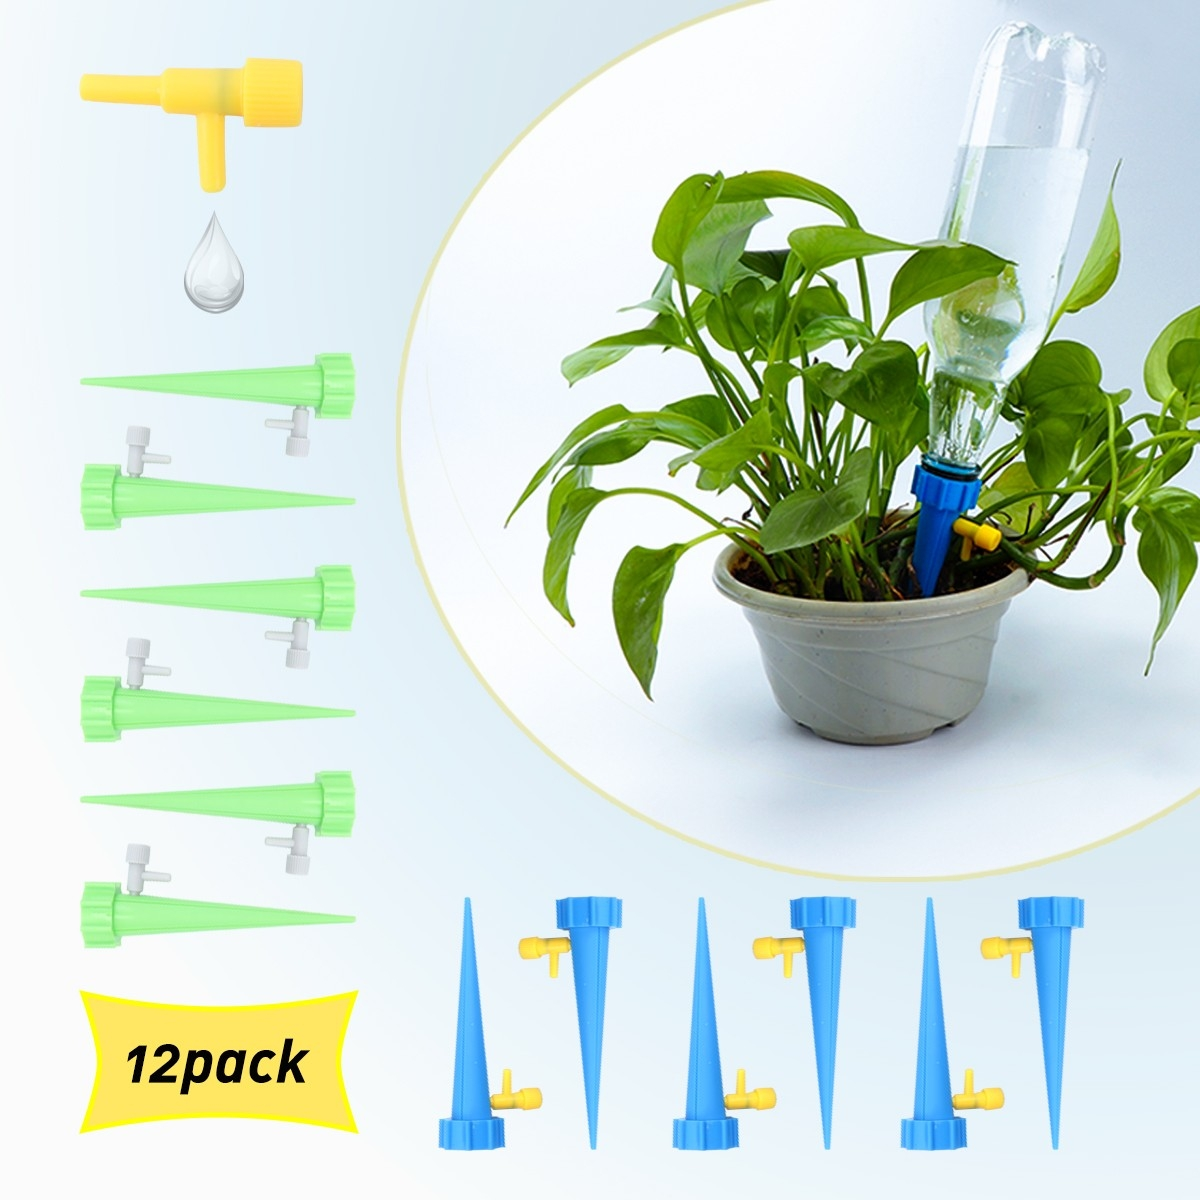 12 Pack Self Watering Spikes Irrigation Drippers Adjustable